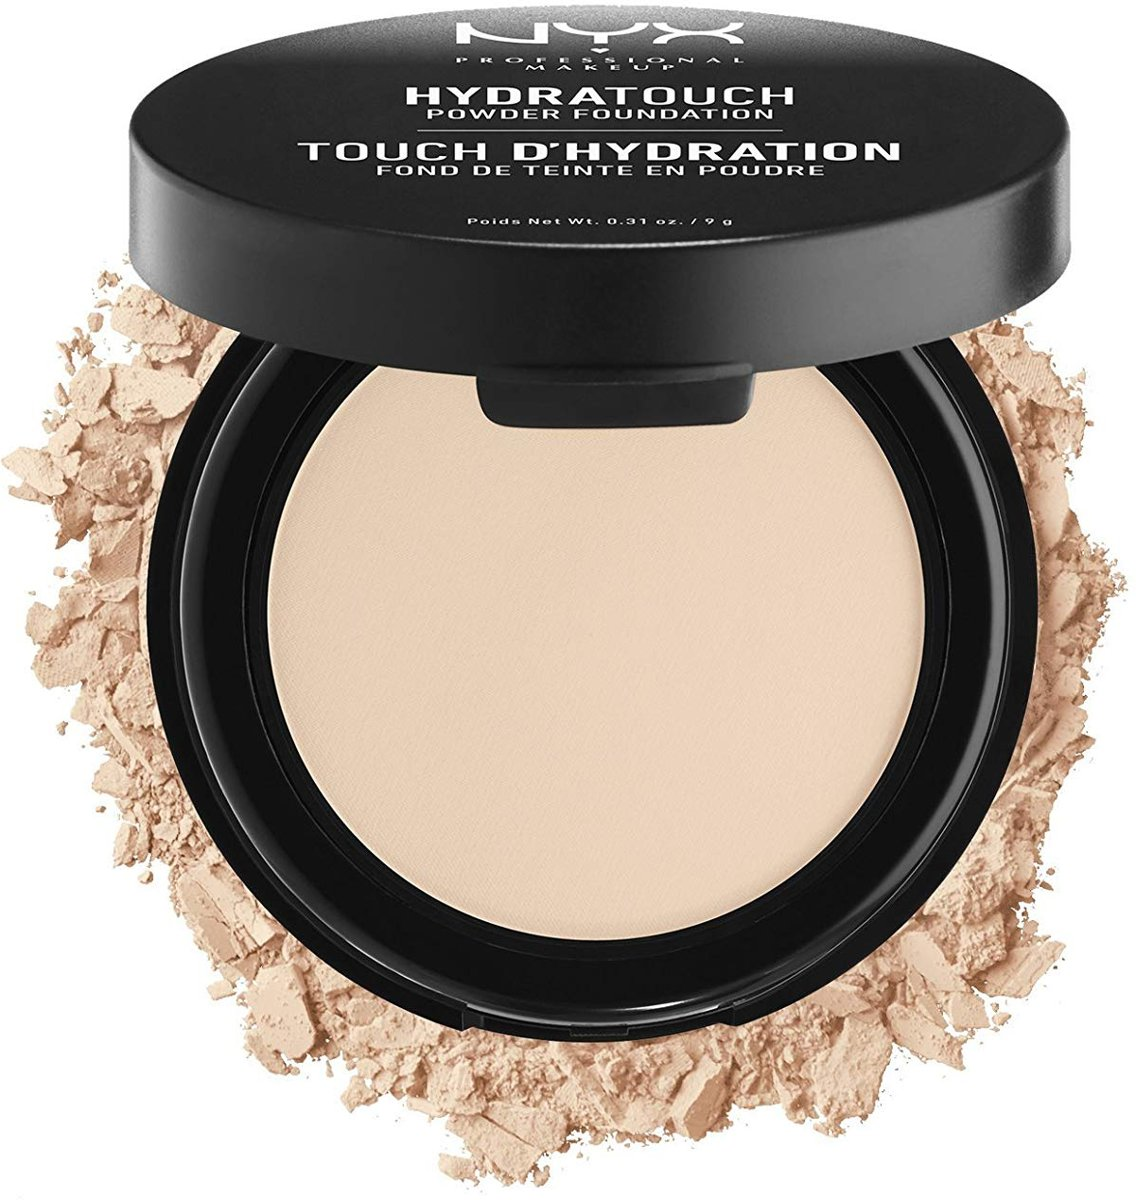 NYX Hydra Touch Powder Foundation Porcelain